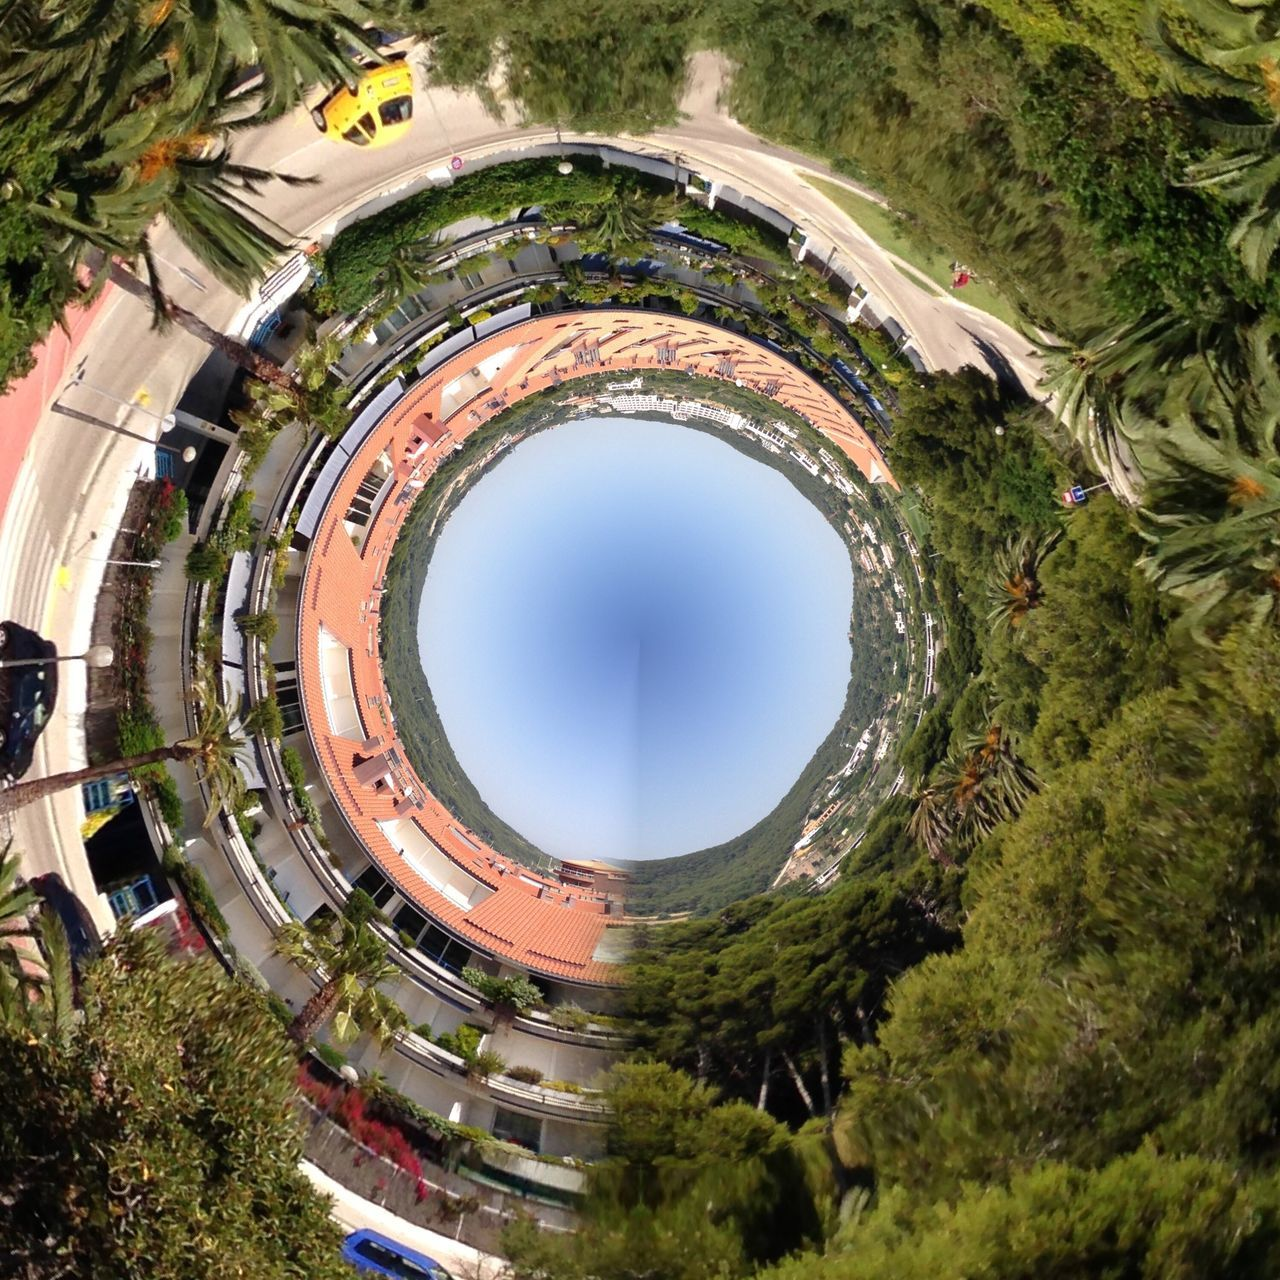 circle, architecture, tree, built structure, day, growth, building exterior, no people, outdoors, fish-eye lens, sky